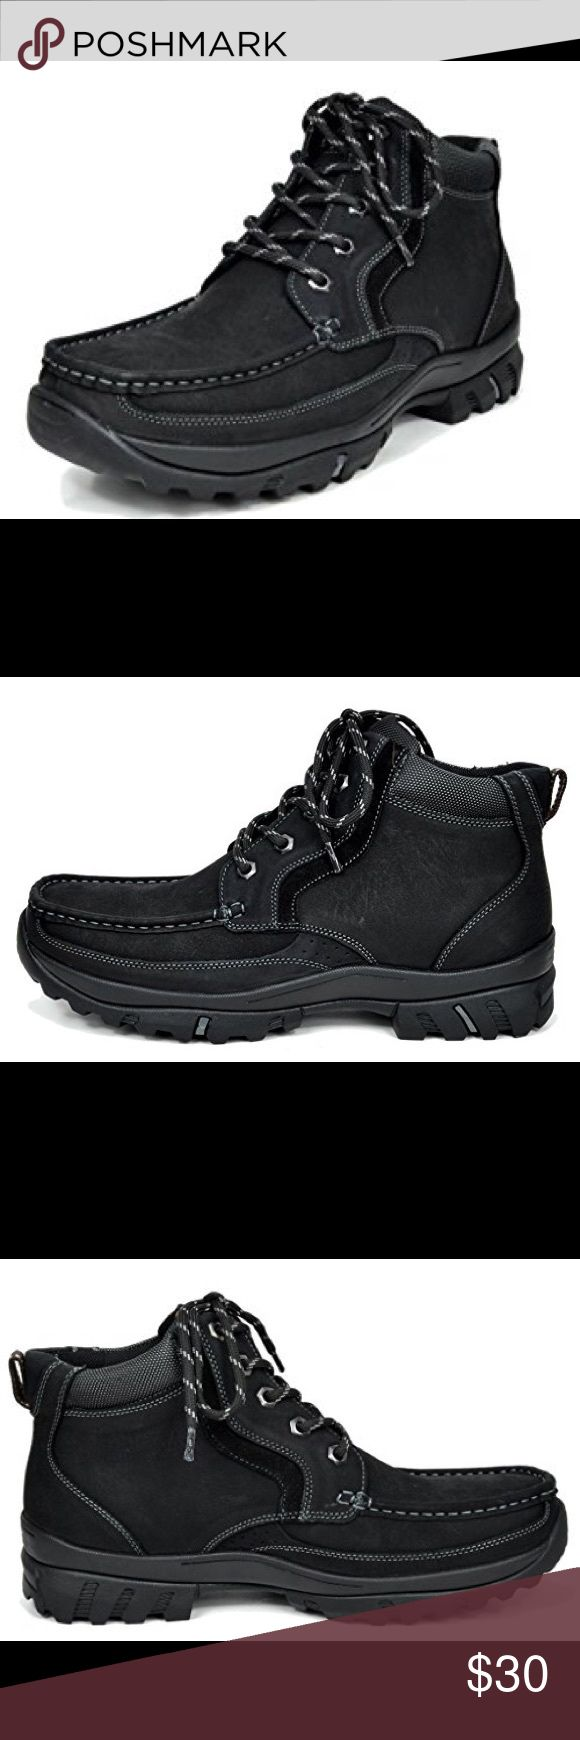 """Bruno Marc Men's Leather Rubber Outsole Boots Bruno Marc Men's Genuine Leather Rubber Outsole Classic American 6"""" Work Boots. Brand new, size 12 bruno marc Shoes Boots"""